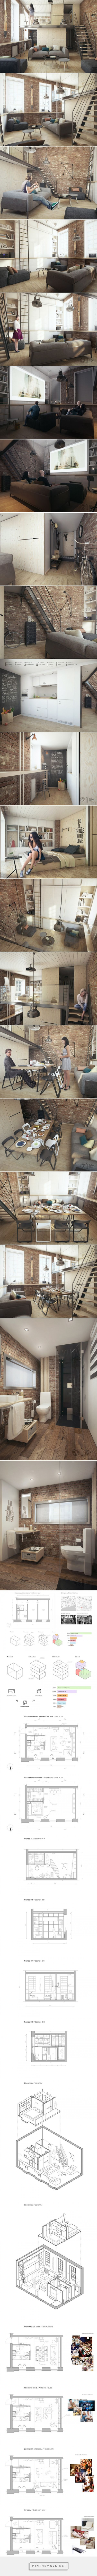 A Super Small Apartment That Adapts To Its Owners Needs... - a grouped images…